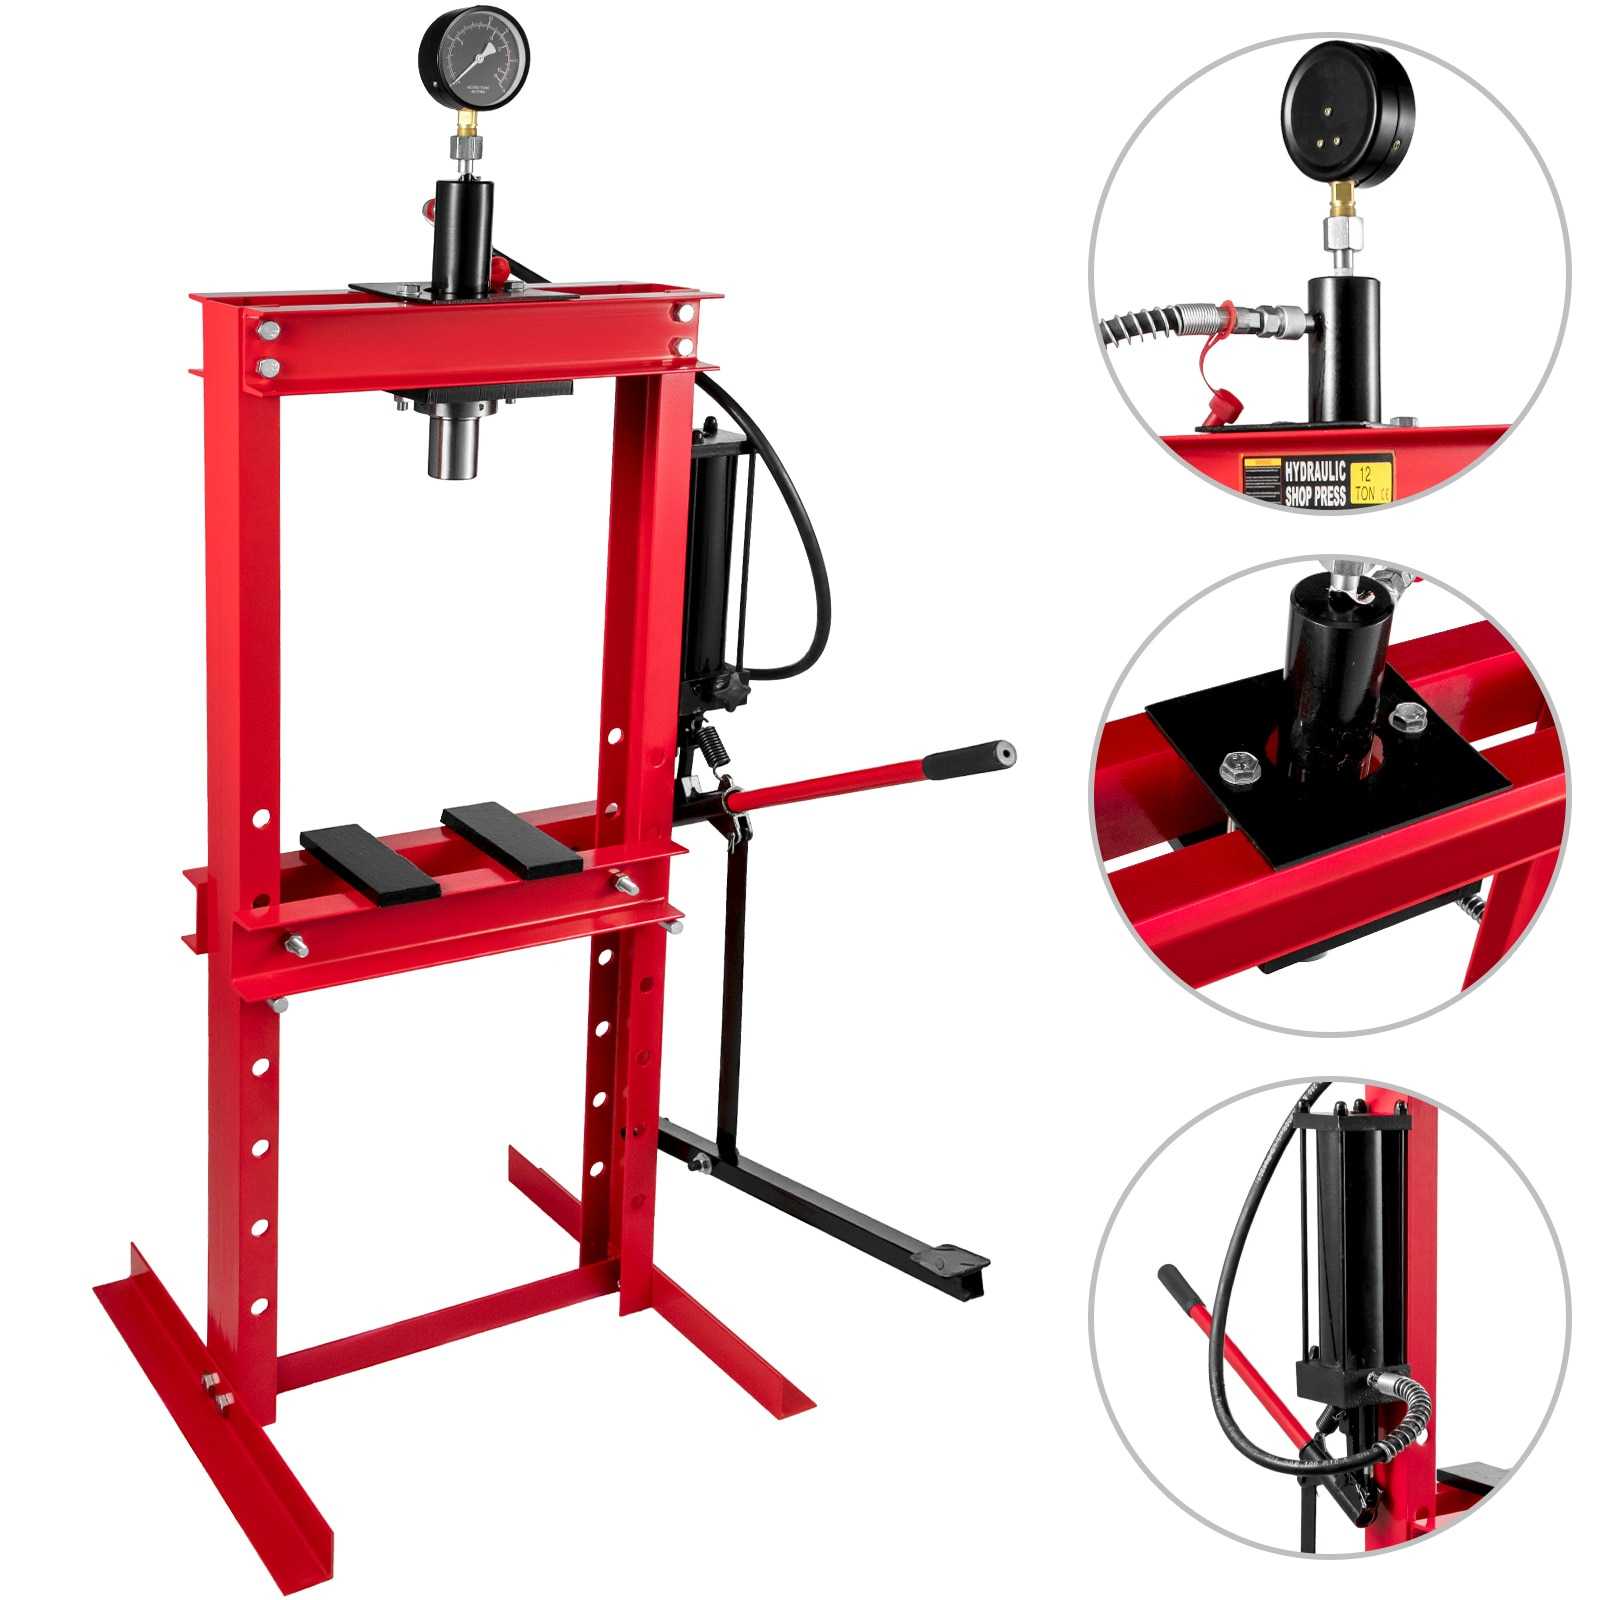 12 Tons Workshop Press Machine Hydraulic Press Tool With Pressure Gauge And Foot Pump Suitable For Garages Or Specialty Shops